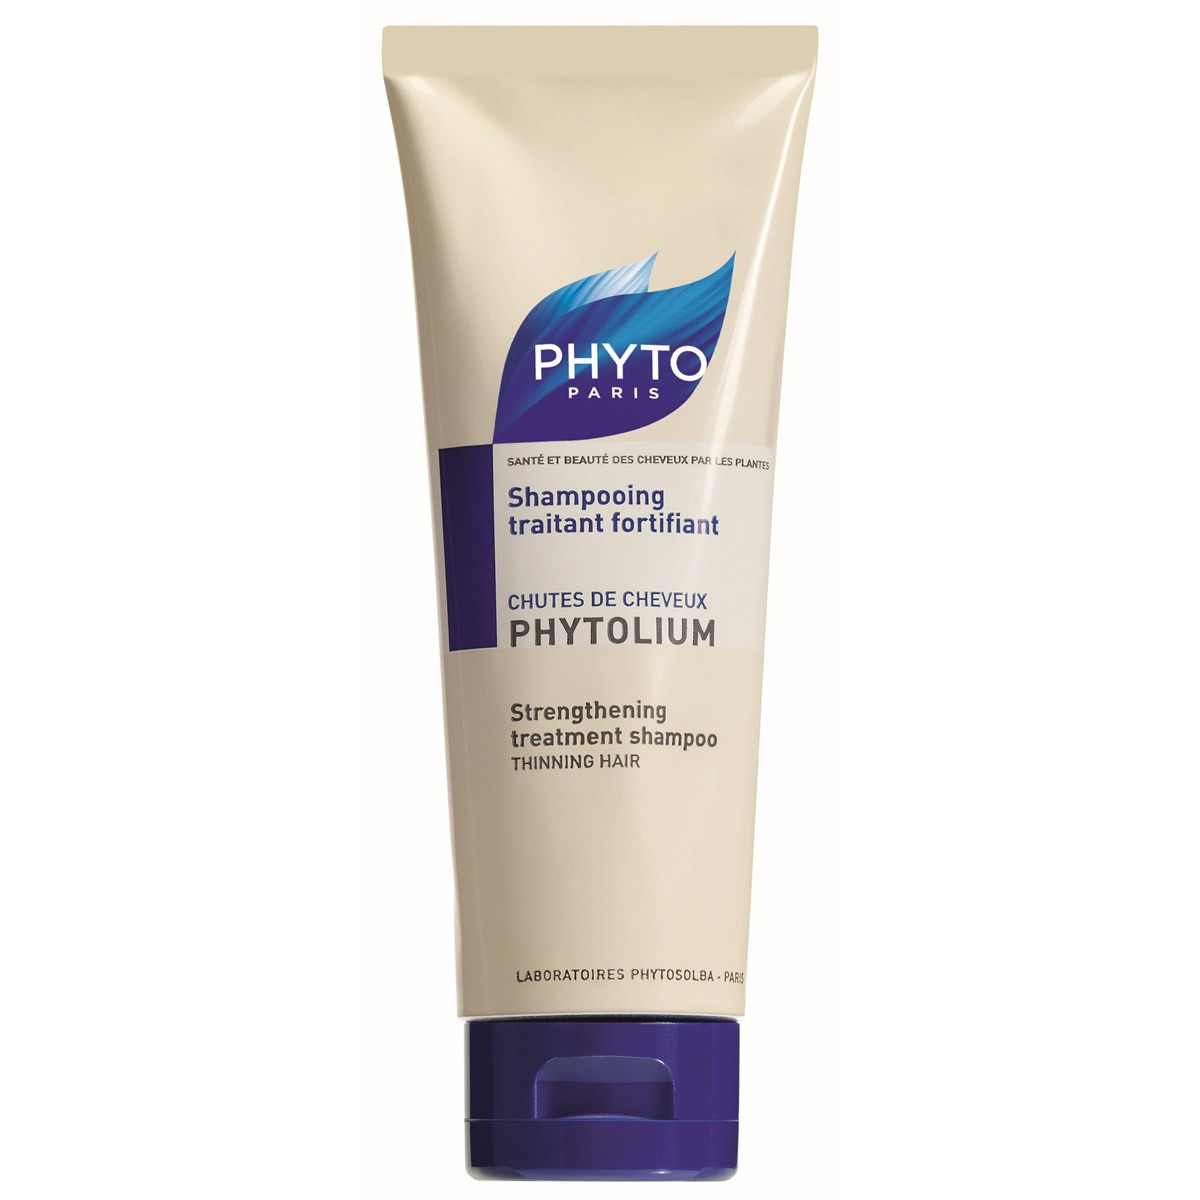 Phyto Phytolium Strengthening Treatment Shampoo